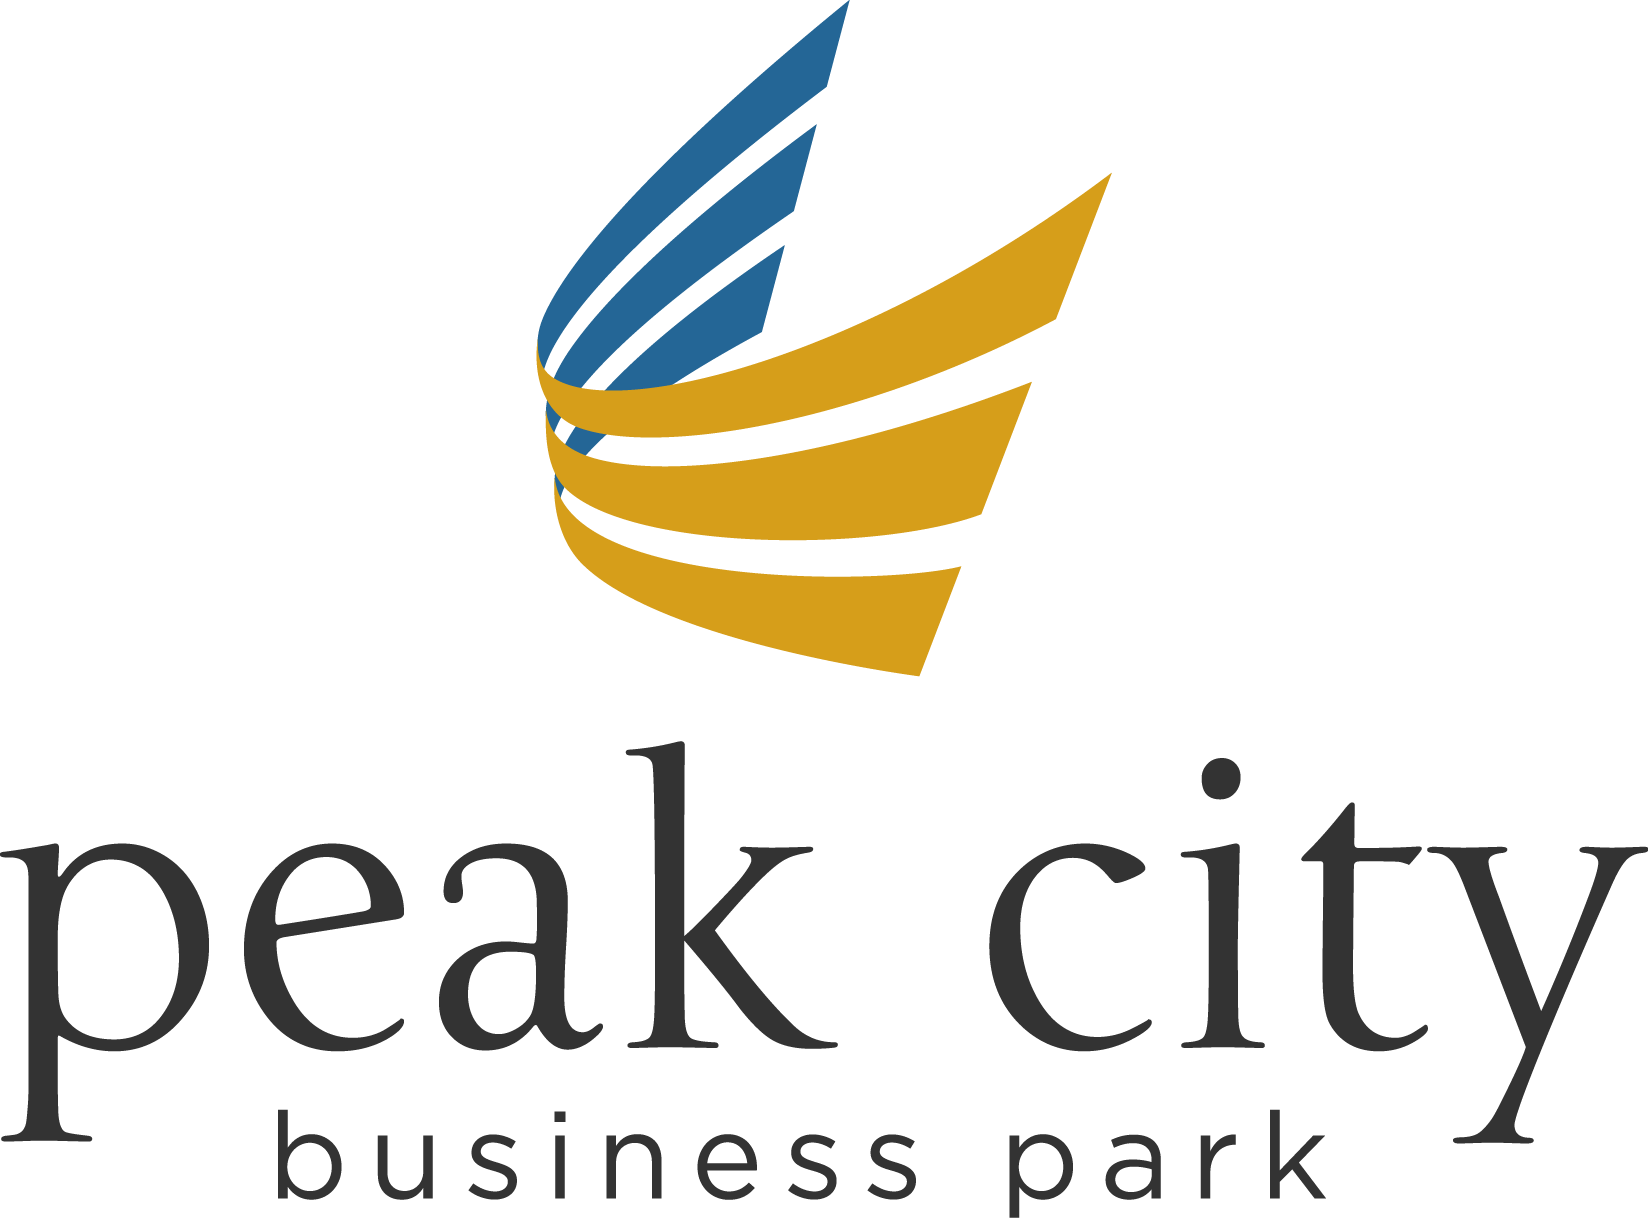 Peak City Business Park